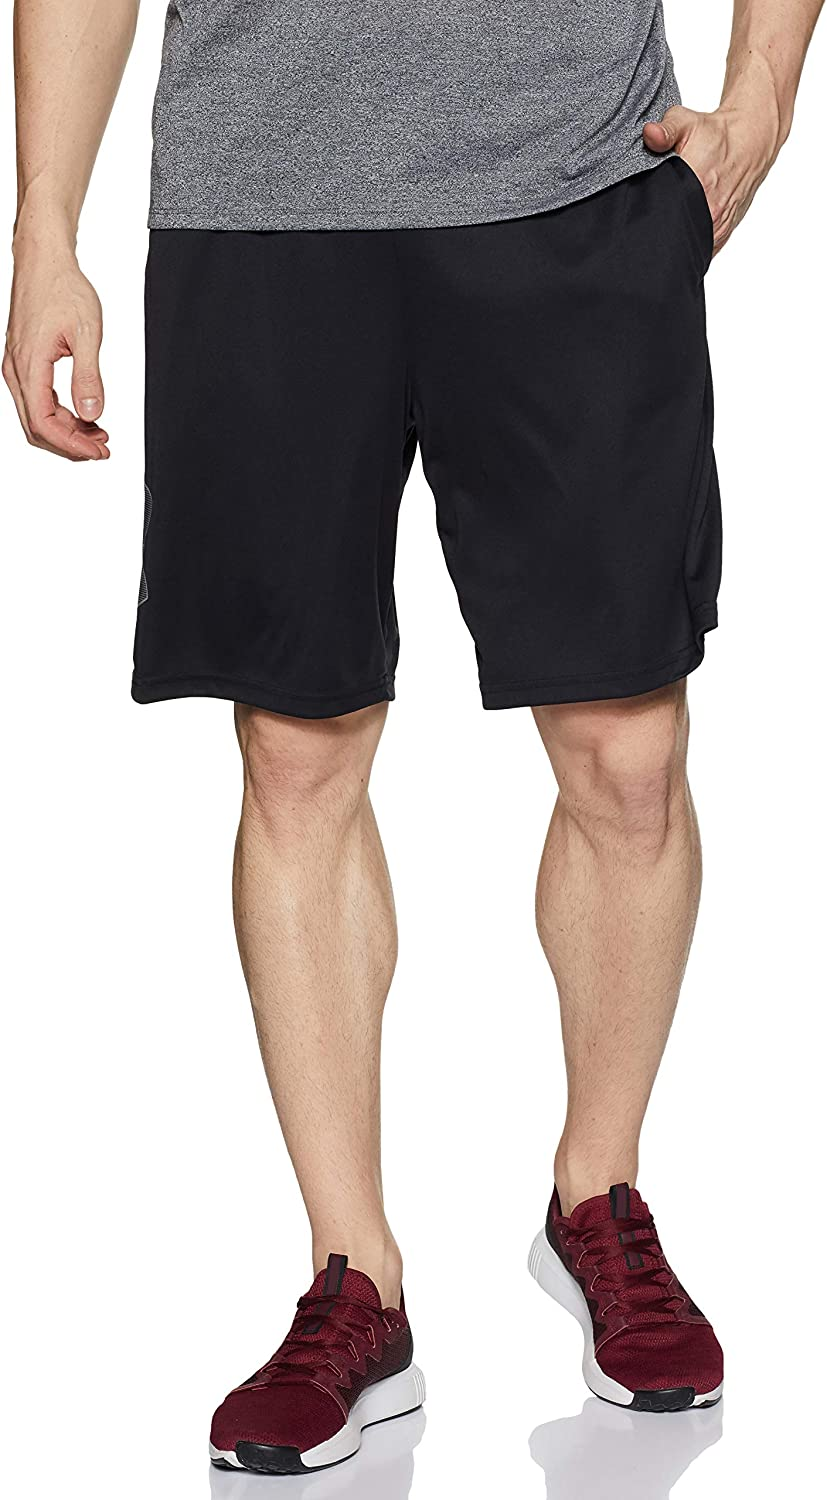 Under Armour Men's Tech Graphic Shorts : Clothing